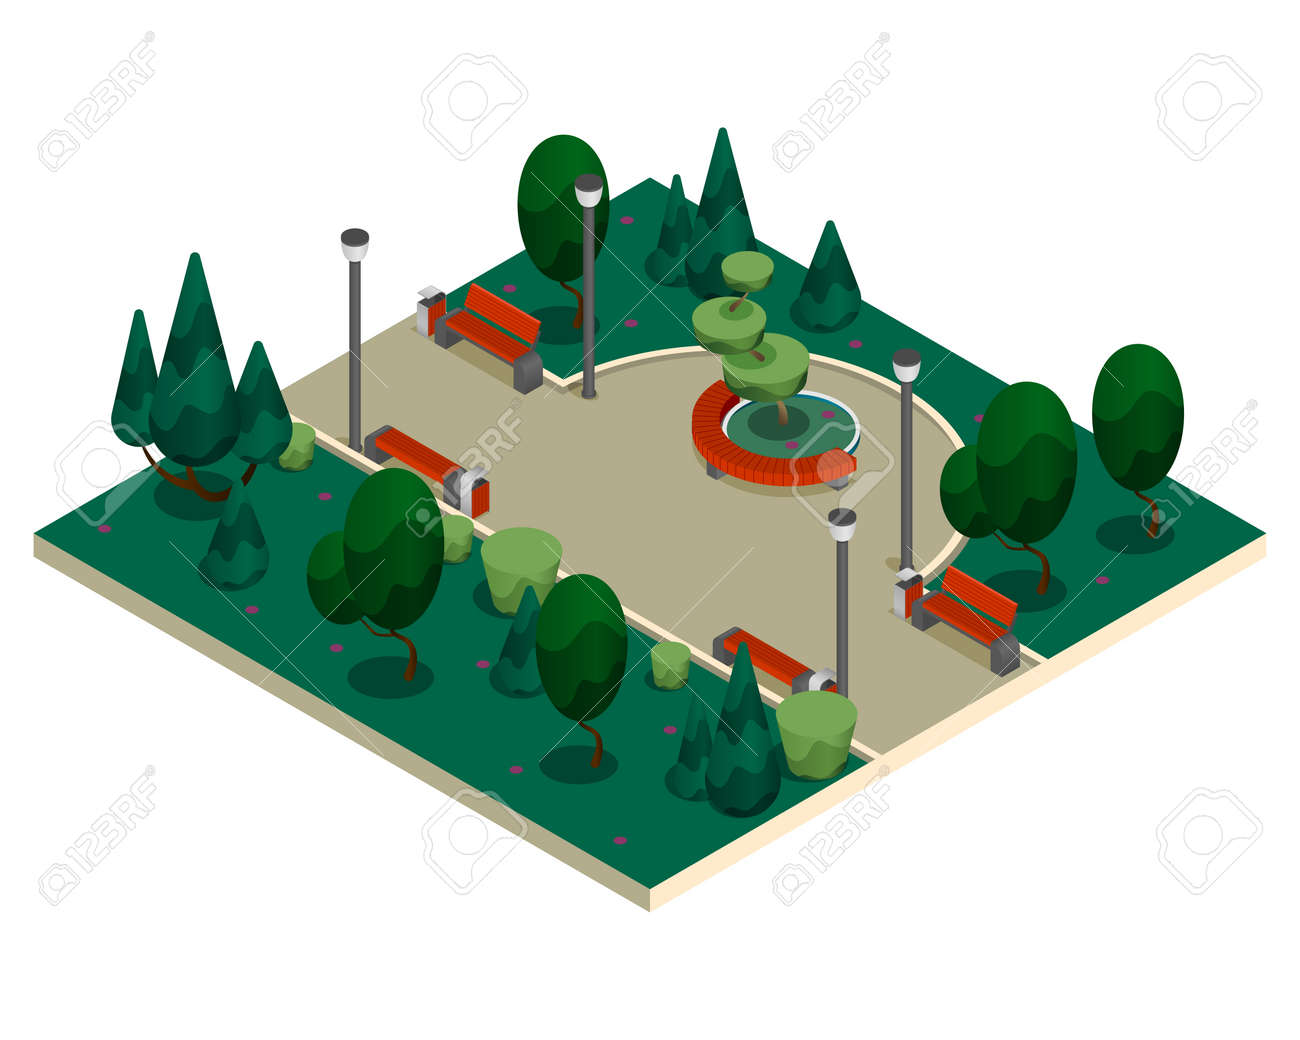 City Constructor Elements Isometric Isolated Composition - 171635951